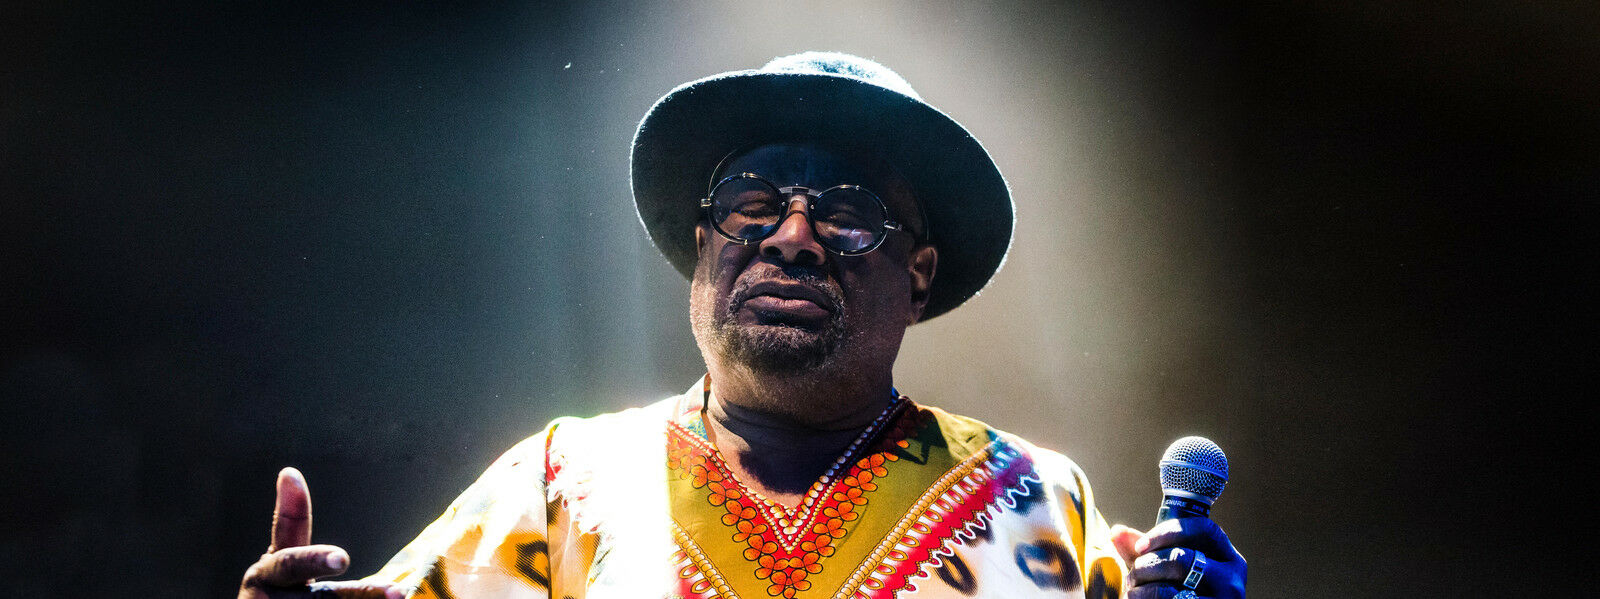 George Clinton with Parliament Funkadelic All Stars, Rose Royce and More